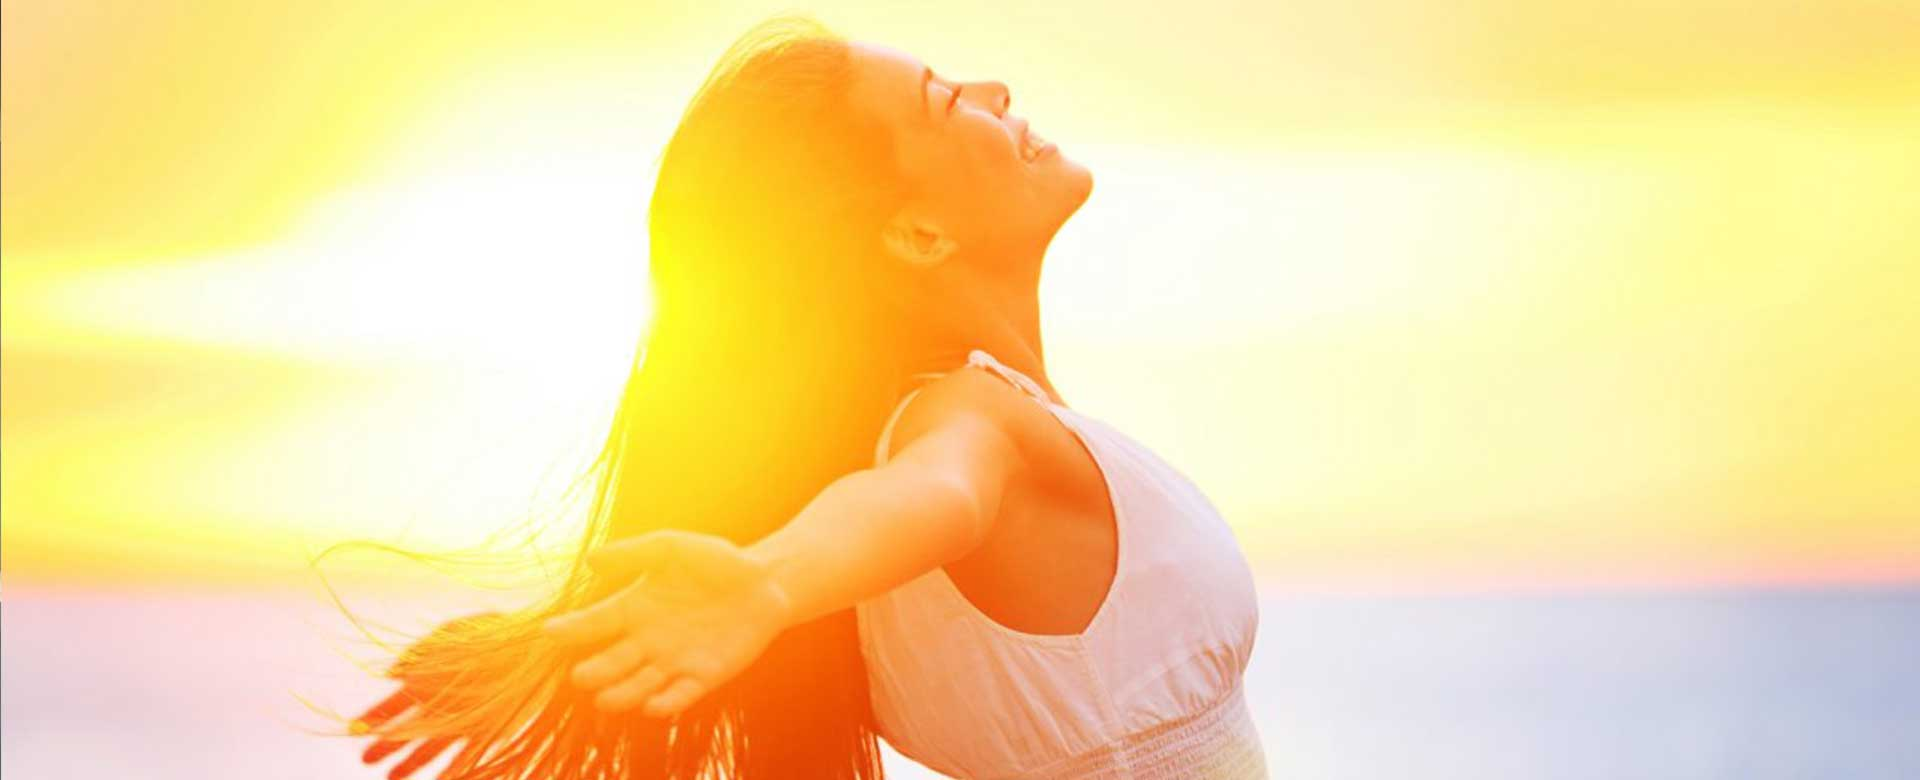 5 Easy Steps To Have A Blessed Day, Home of Wellness